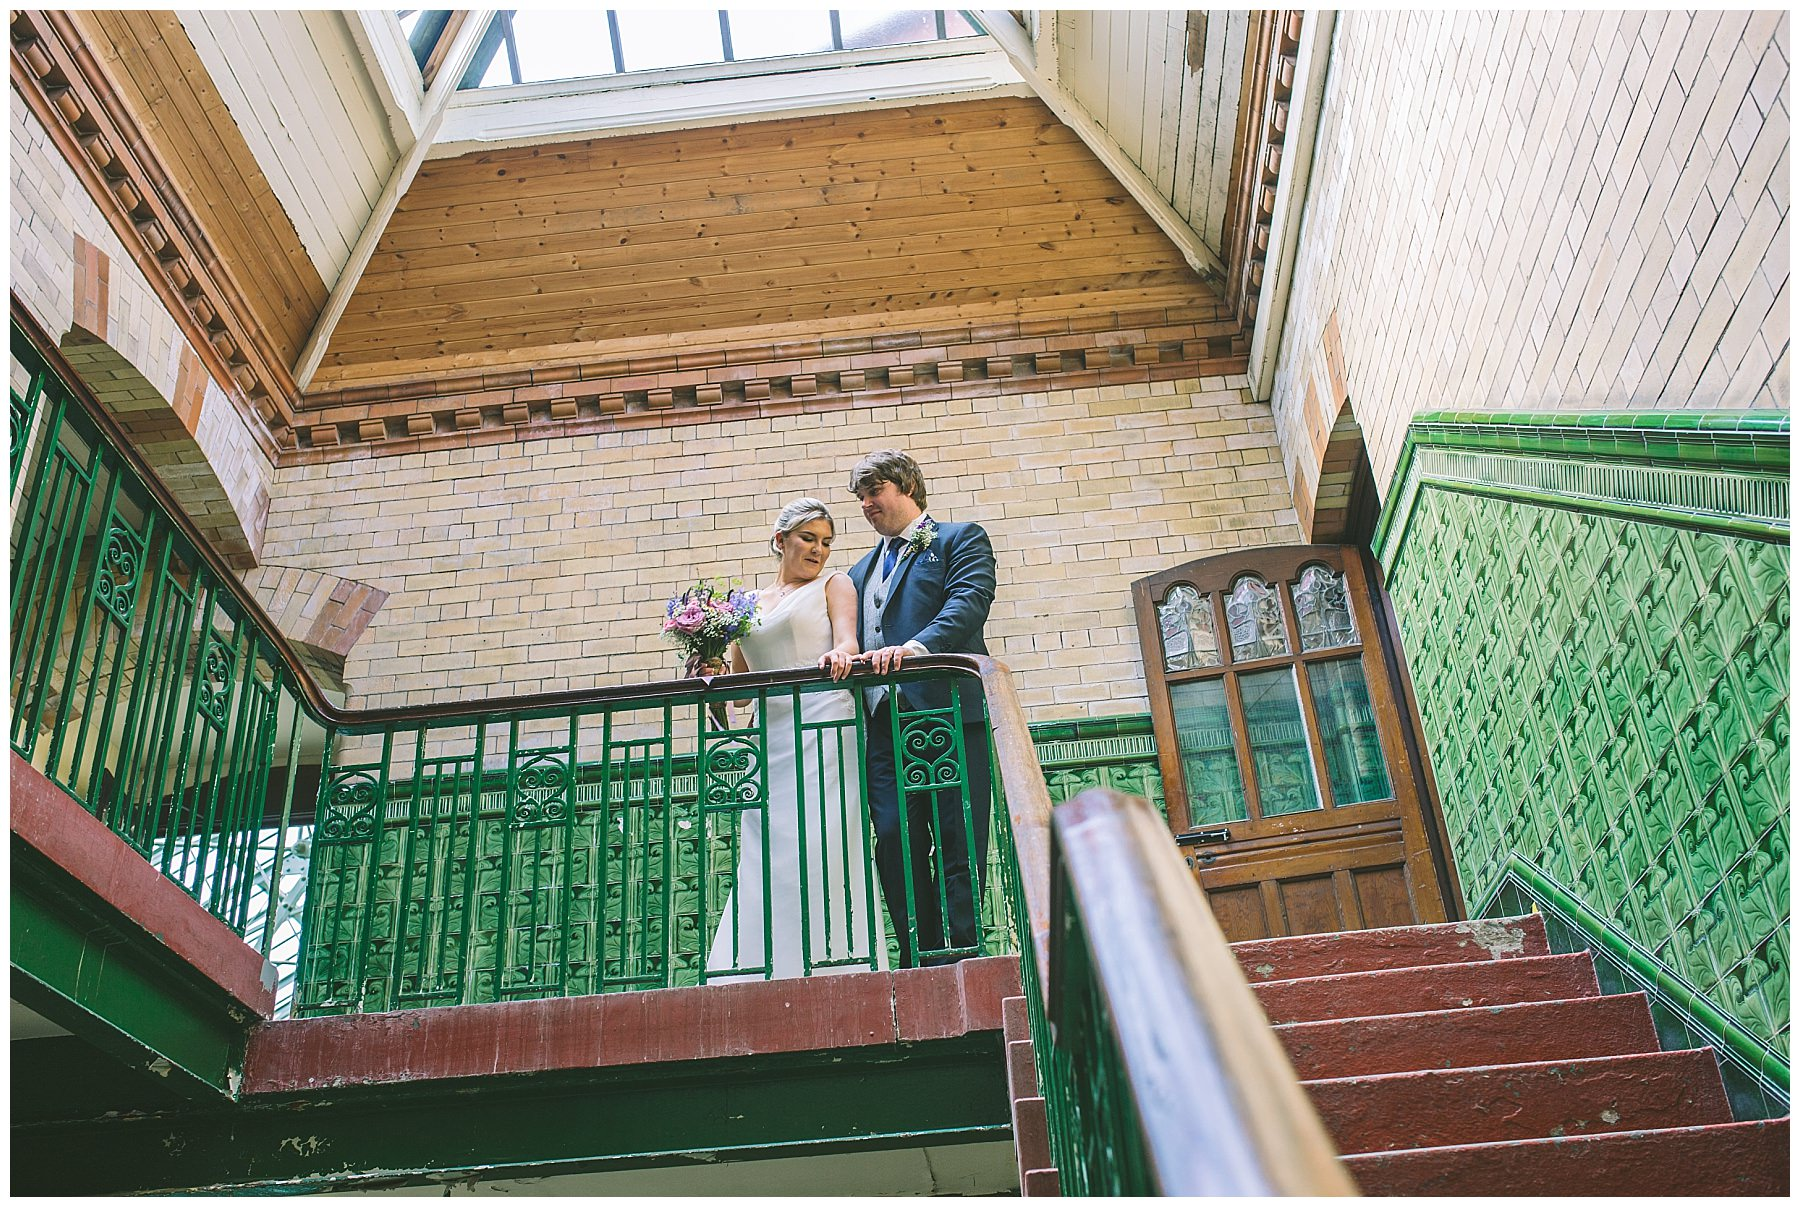 Couples portraits at Victoria Baths